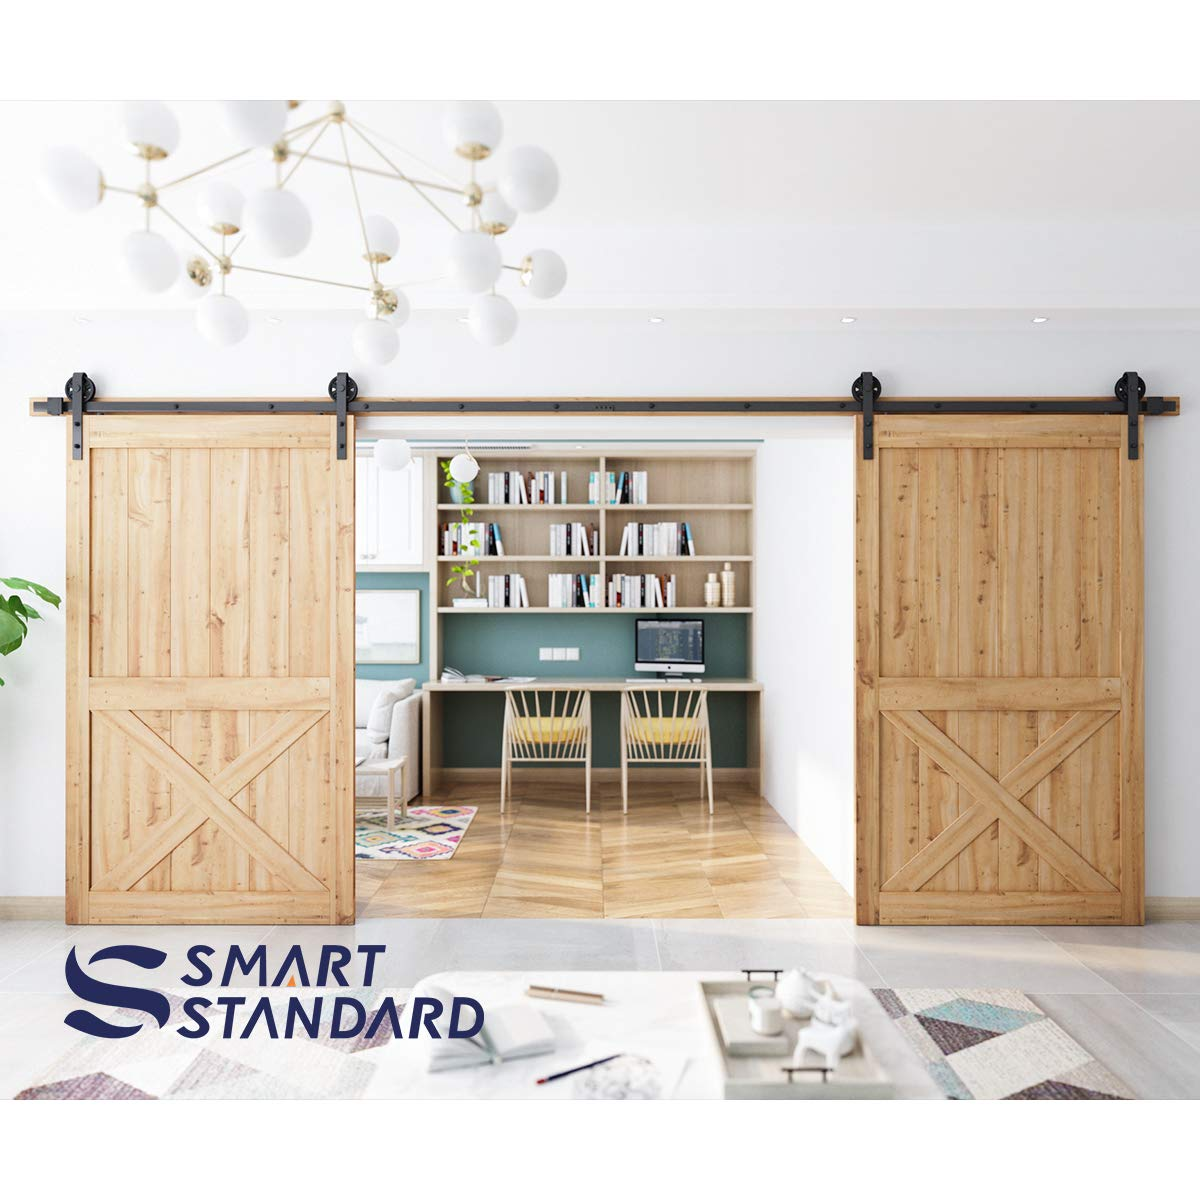 16ft Double Door Sliding Barn Door Hardware Kit - Smoothly and Quietly - Easy to Install - Includes Step-by-Step Installation Instruction -Fit 42''-48'' Wide Door Panel(Big Industrial Wheel Hanger) by SMARTSTANDARD (Image #4)